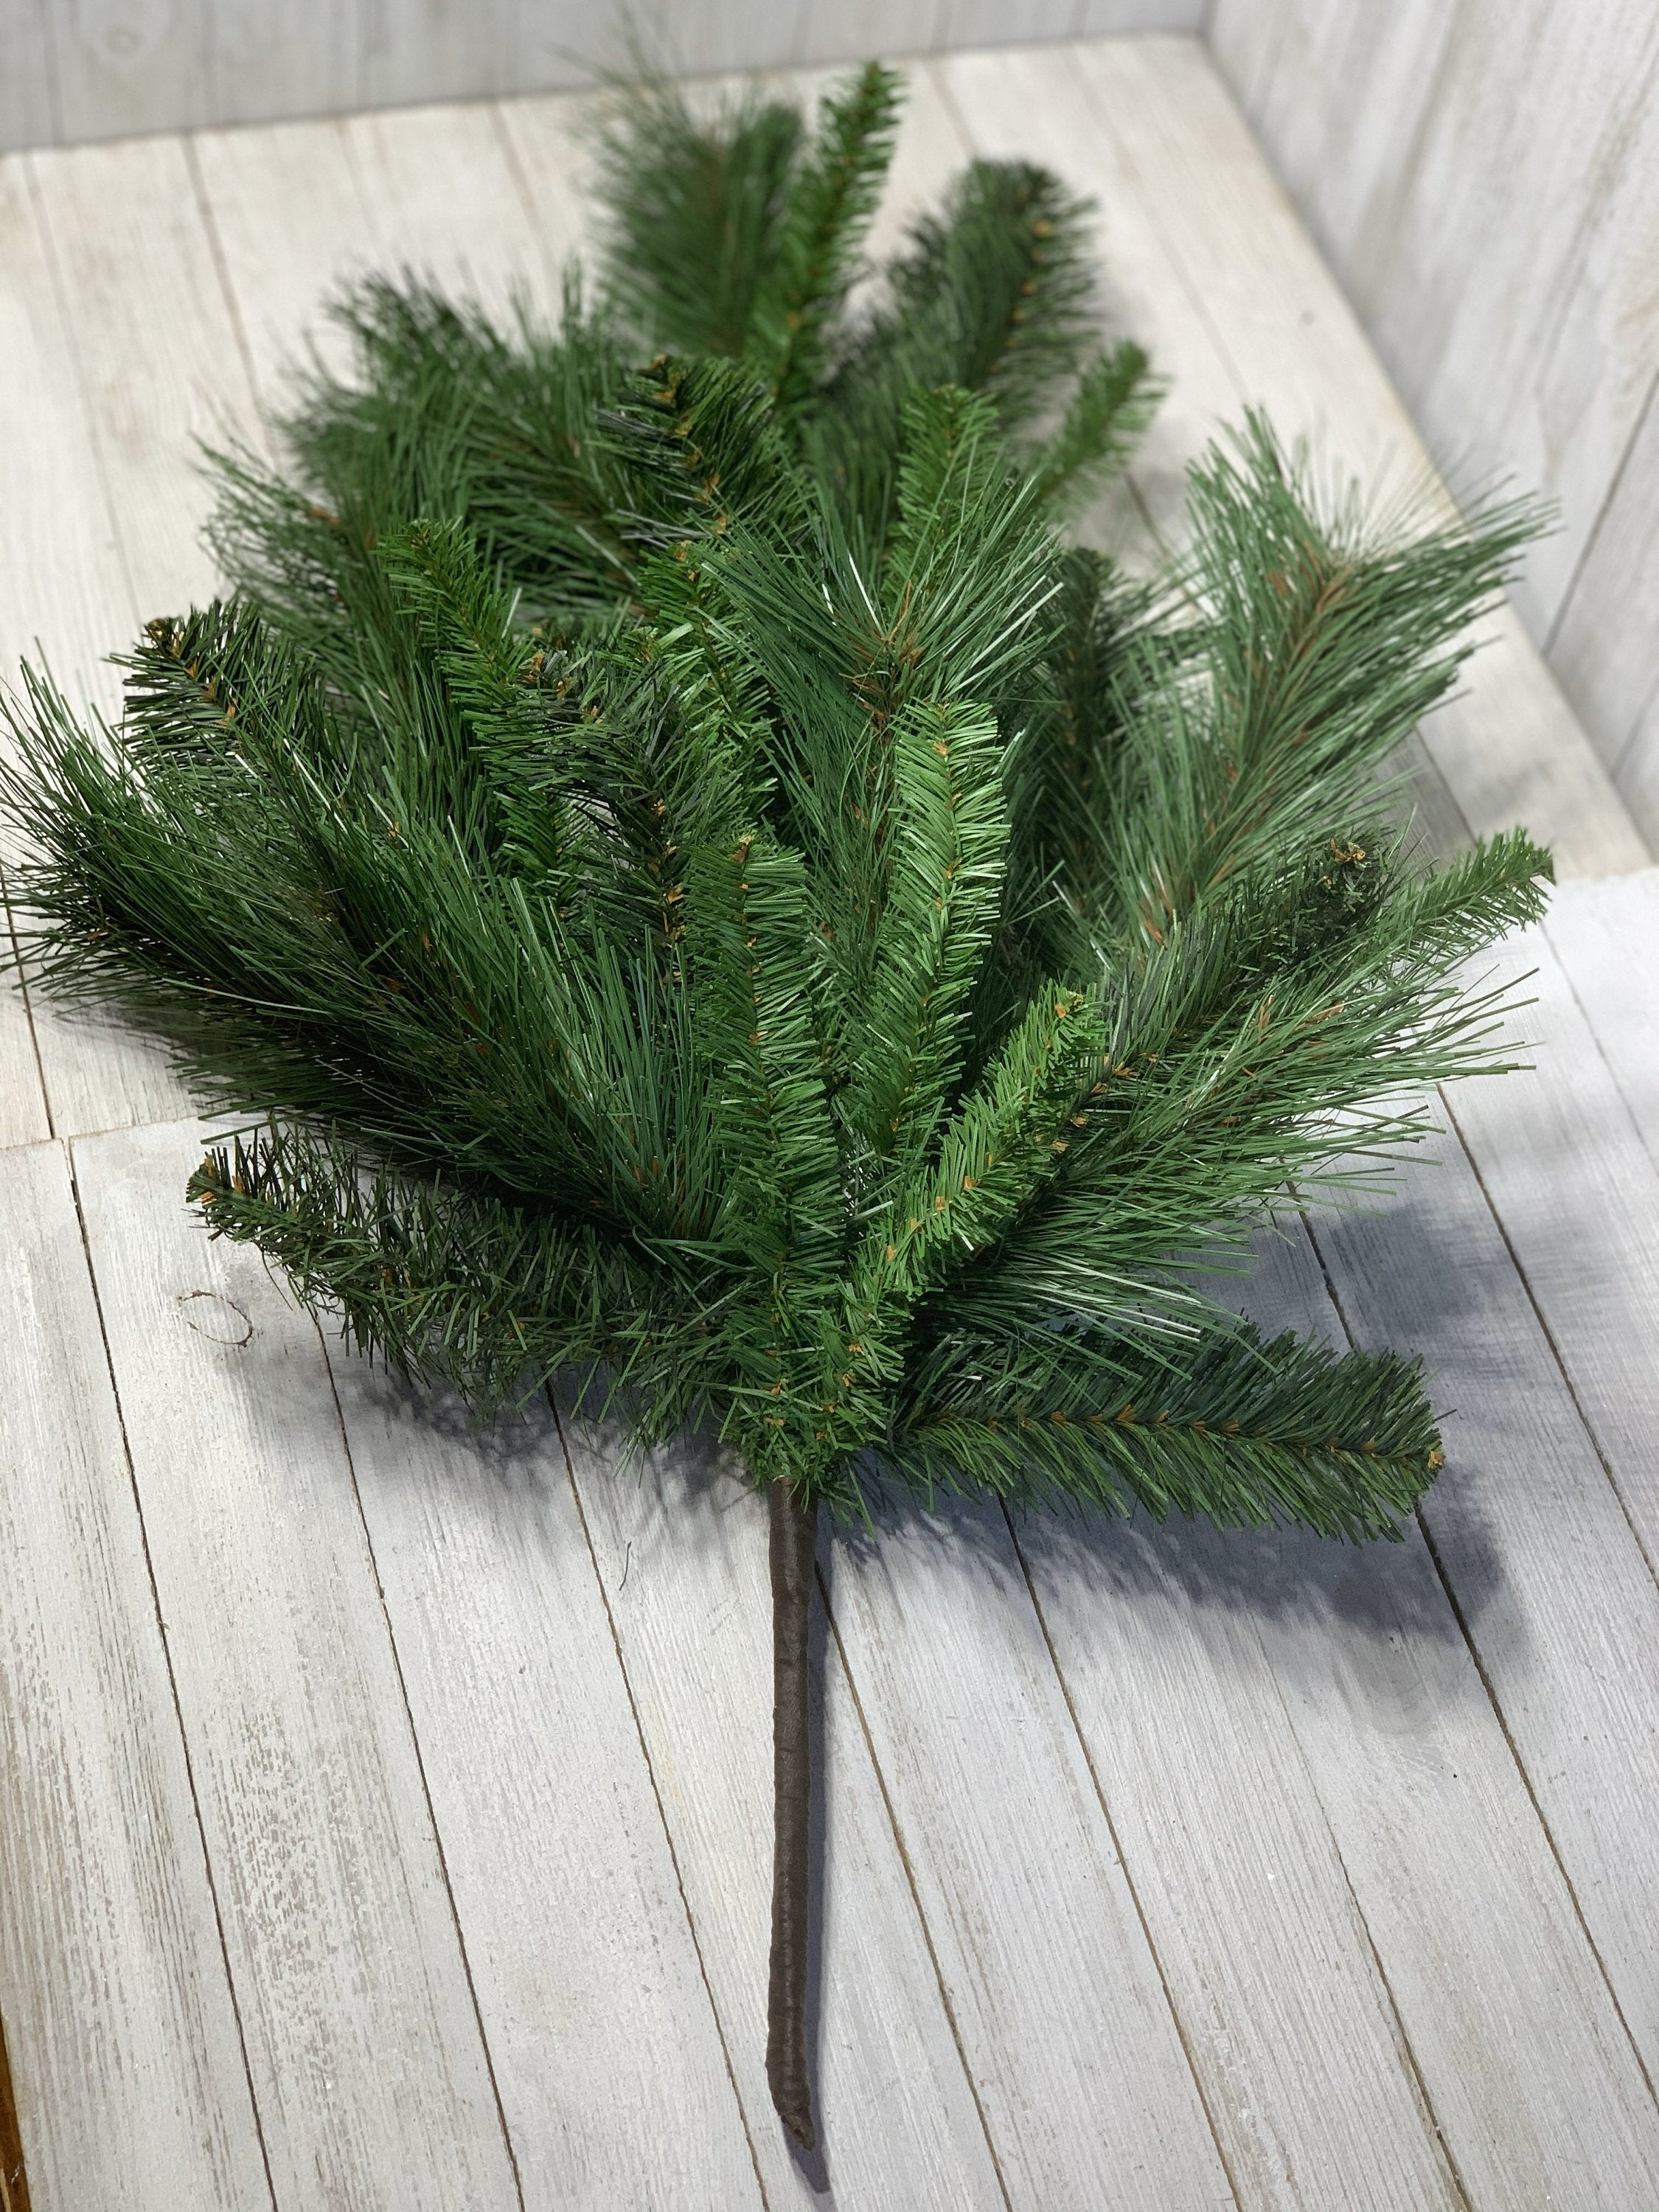 Pine tear drop spray, teardrop with pine, wreath base, pine base, mixed pine greenery, artifical greenery, floral supplies,